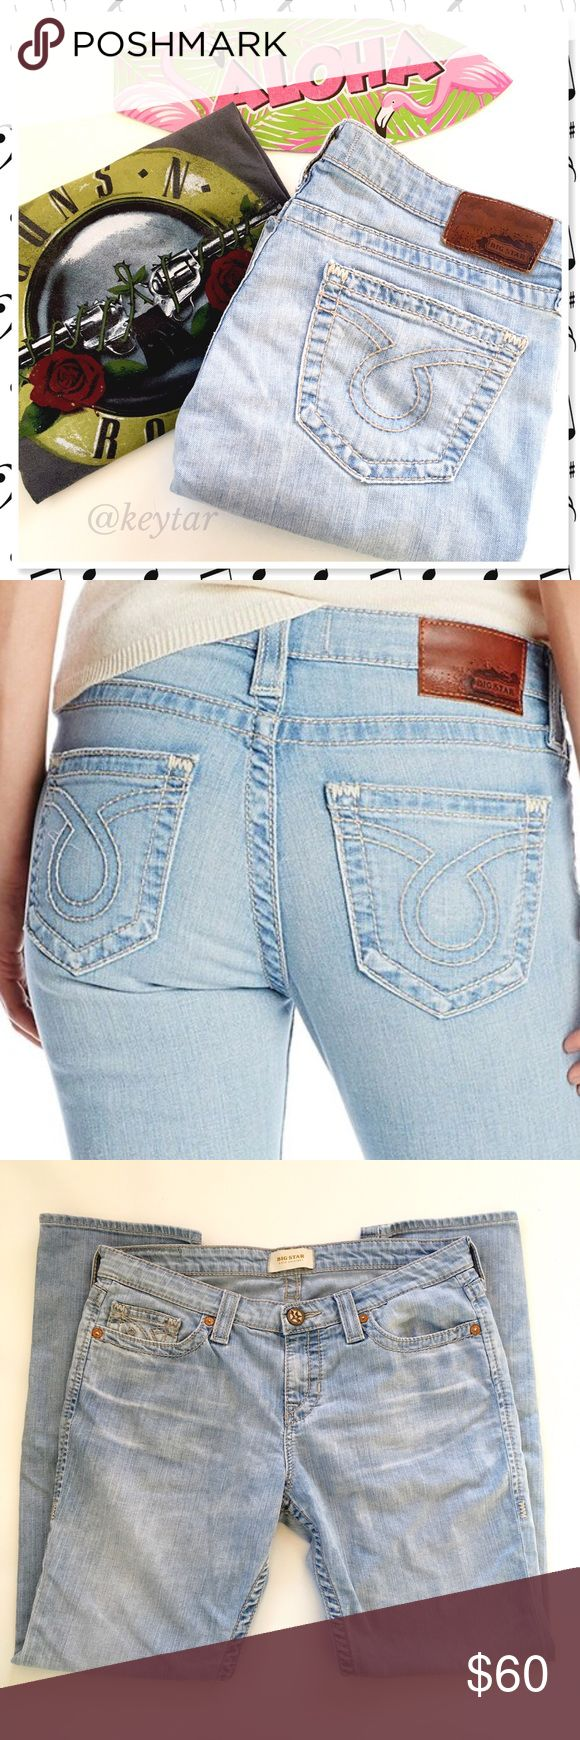 """Big Star Kate Straight Leg Jeans in Shasta Big Star's Kate straight leg in Shasta is a mid-rise vintage faded was jean with extra fading at the thighs and back. Copper tone rivets and leather logo patch with classic omega back pocket design. Soft fabric, fits like an old pair of your favorite jeans. Soft supple fabric. Originally $295.99. Grab these for a fraction of the price!  ⚡️size 33  18"""" waist (flat) 31"""" inseam 7.5"""" rise ❌ trades ❌ lowballs 👍offer button  🌟Bundle 2 or more items and…"""